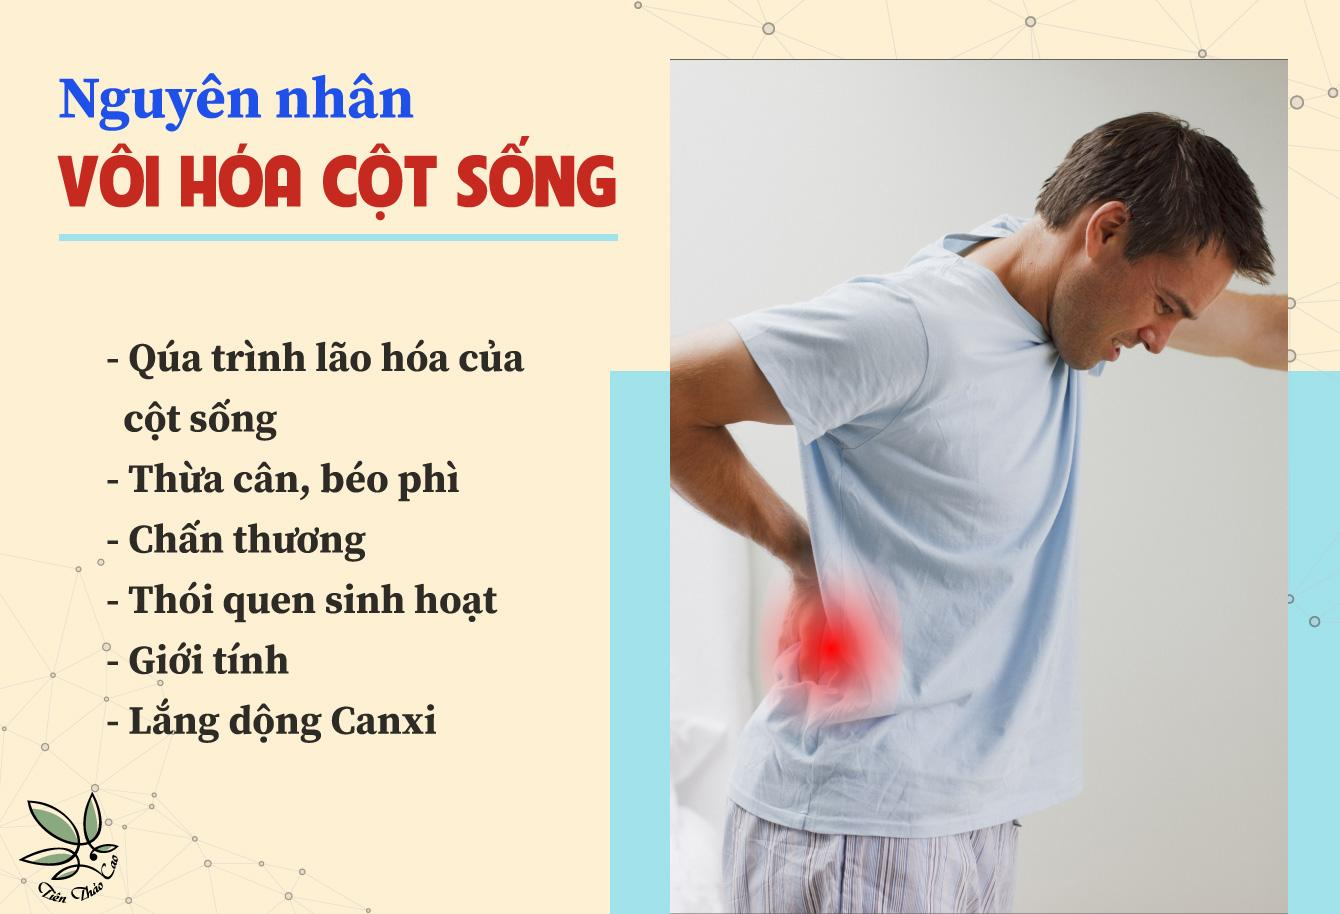 voi-hoa-cot-song